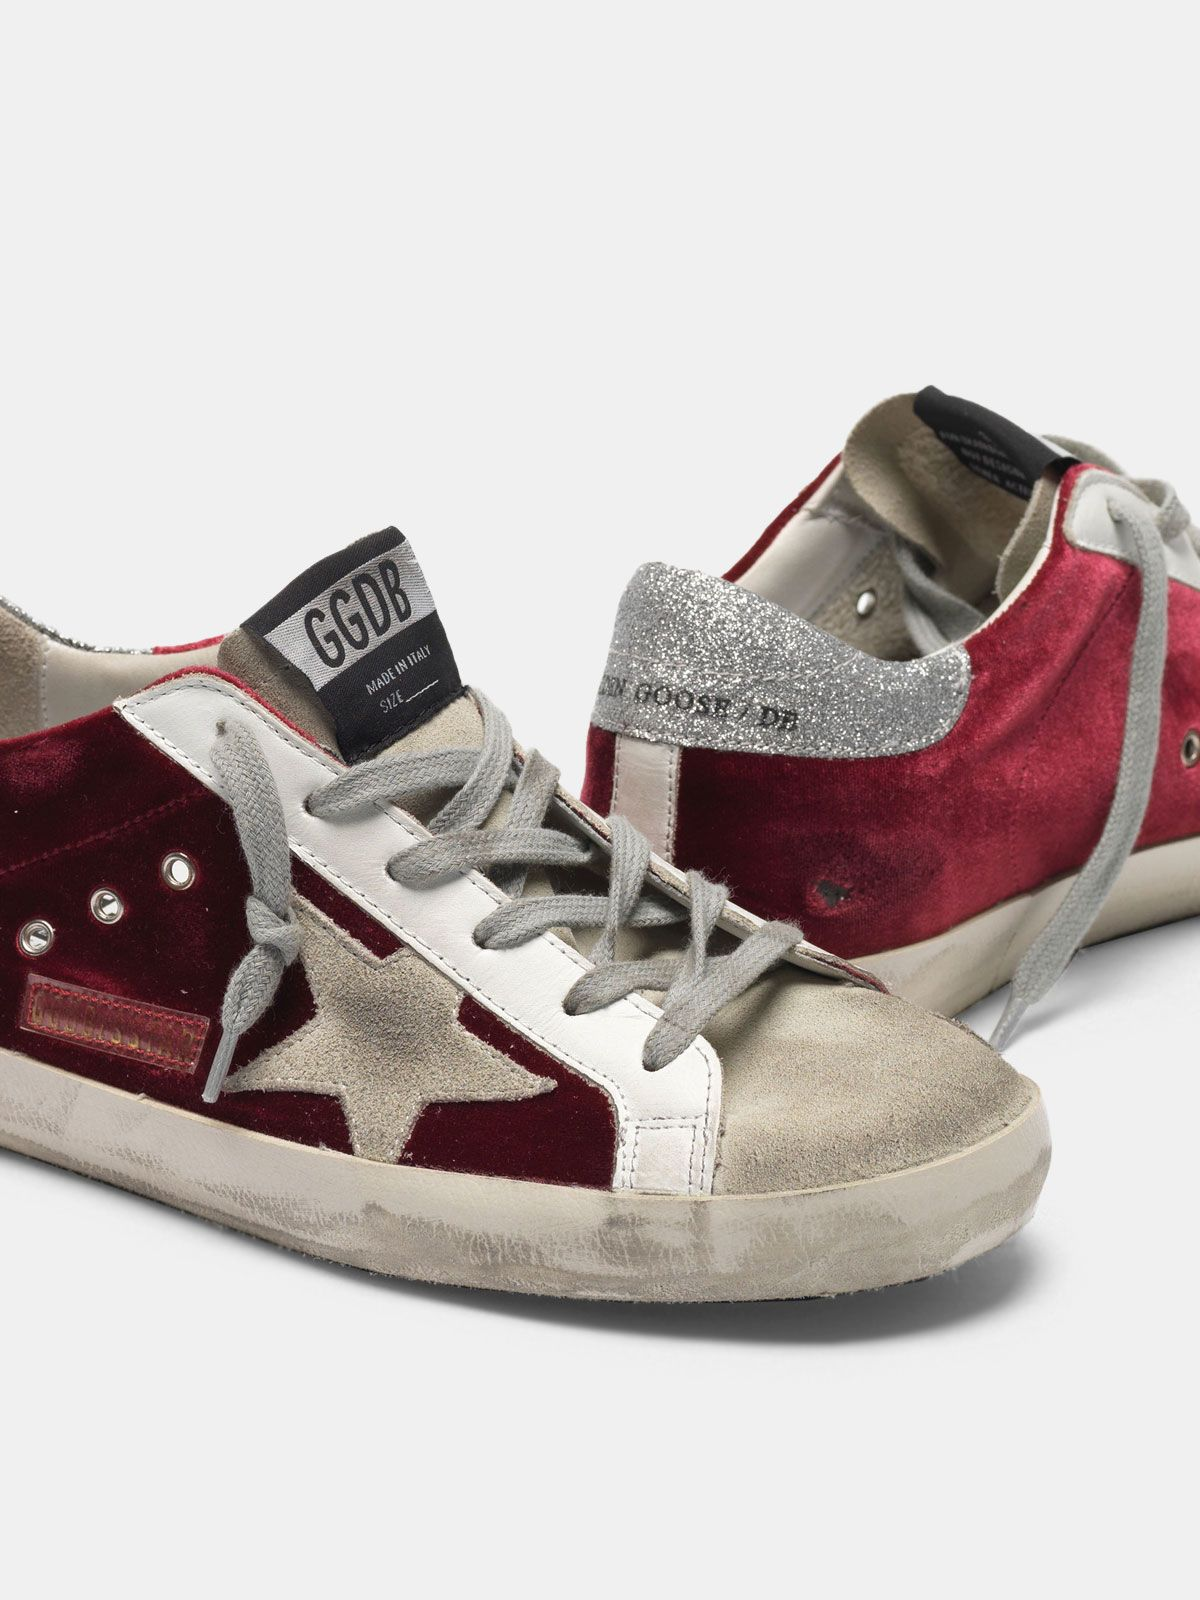 Golden Goose - Super-Star sneakers in velvet with glittery heel tab in